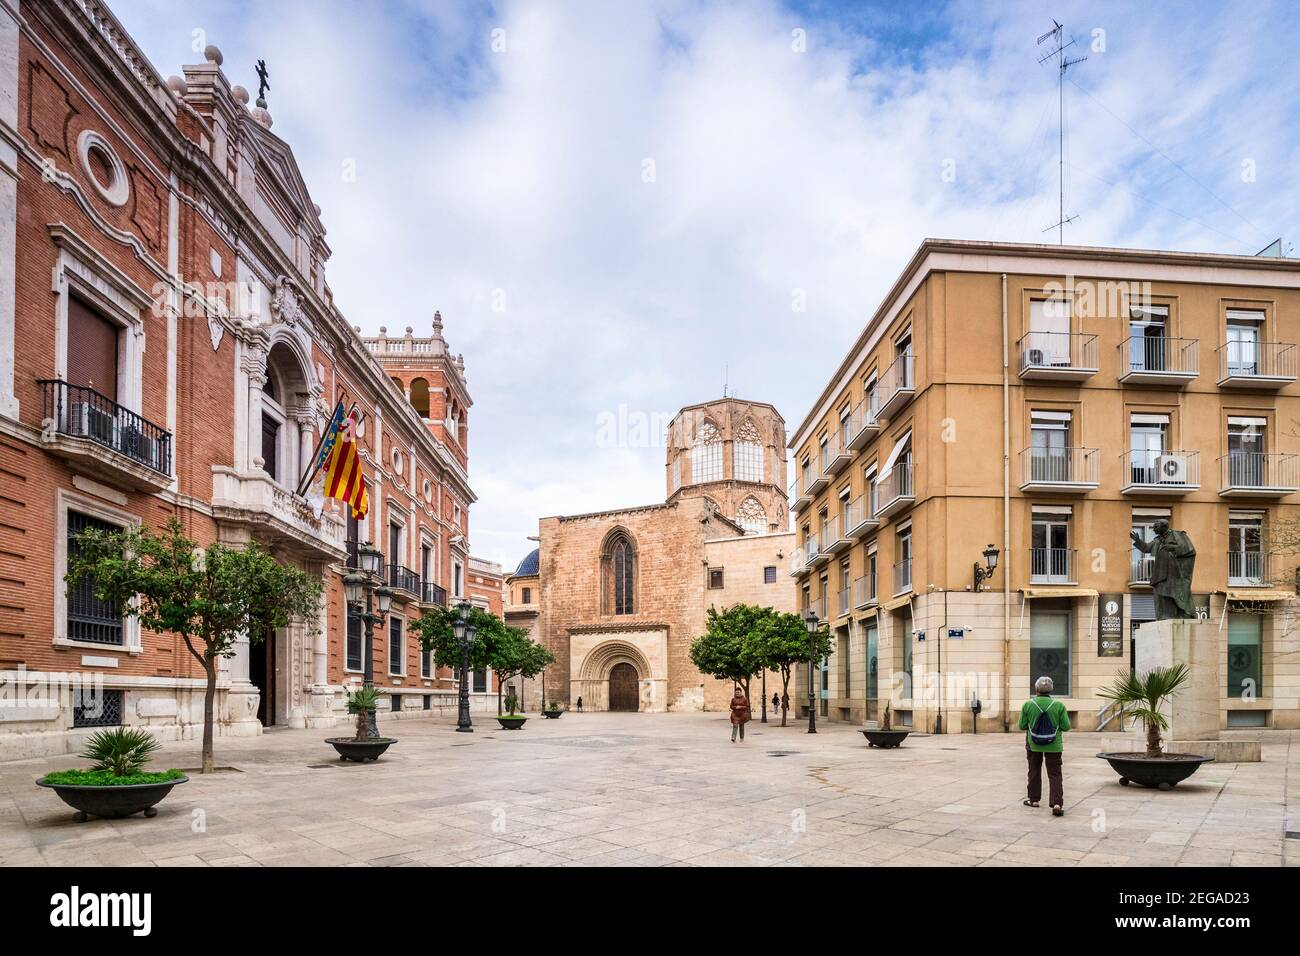 3 March 2020: Valencia, Spain - View along Carrer de Palau towards Valencia Cathedral, with the offices of the Archdiocese of Valencia on the left. Stock Photo